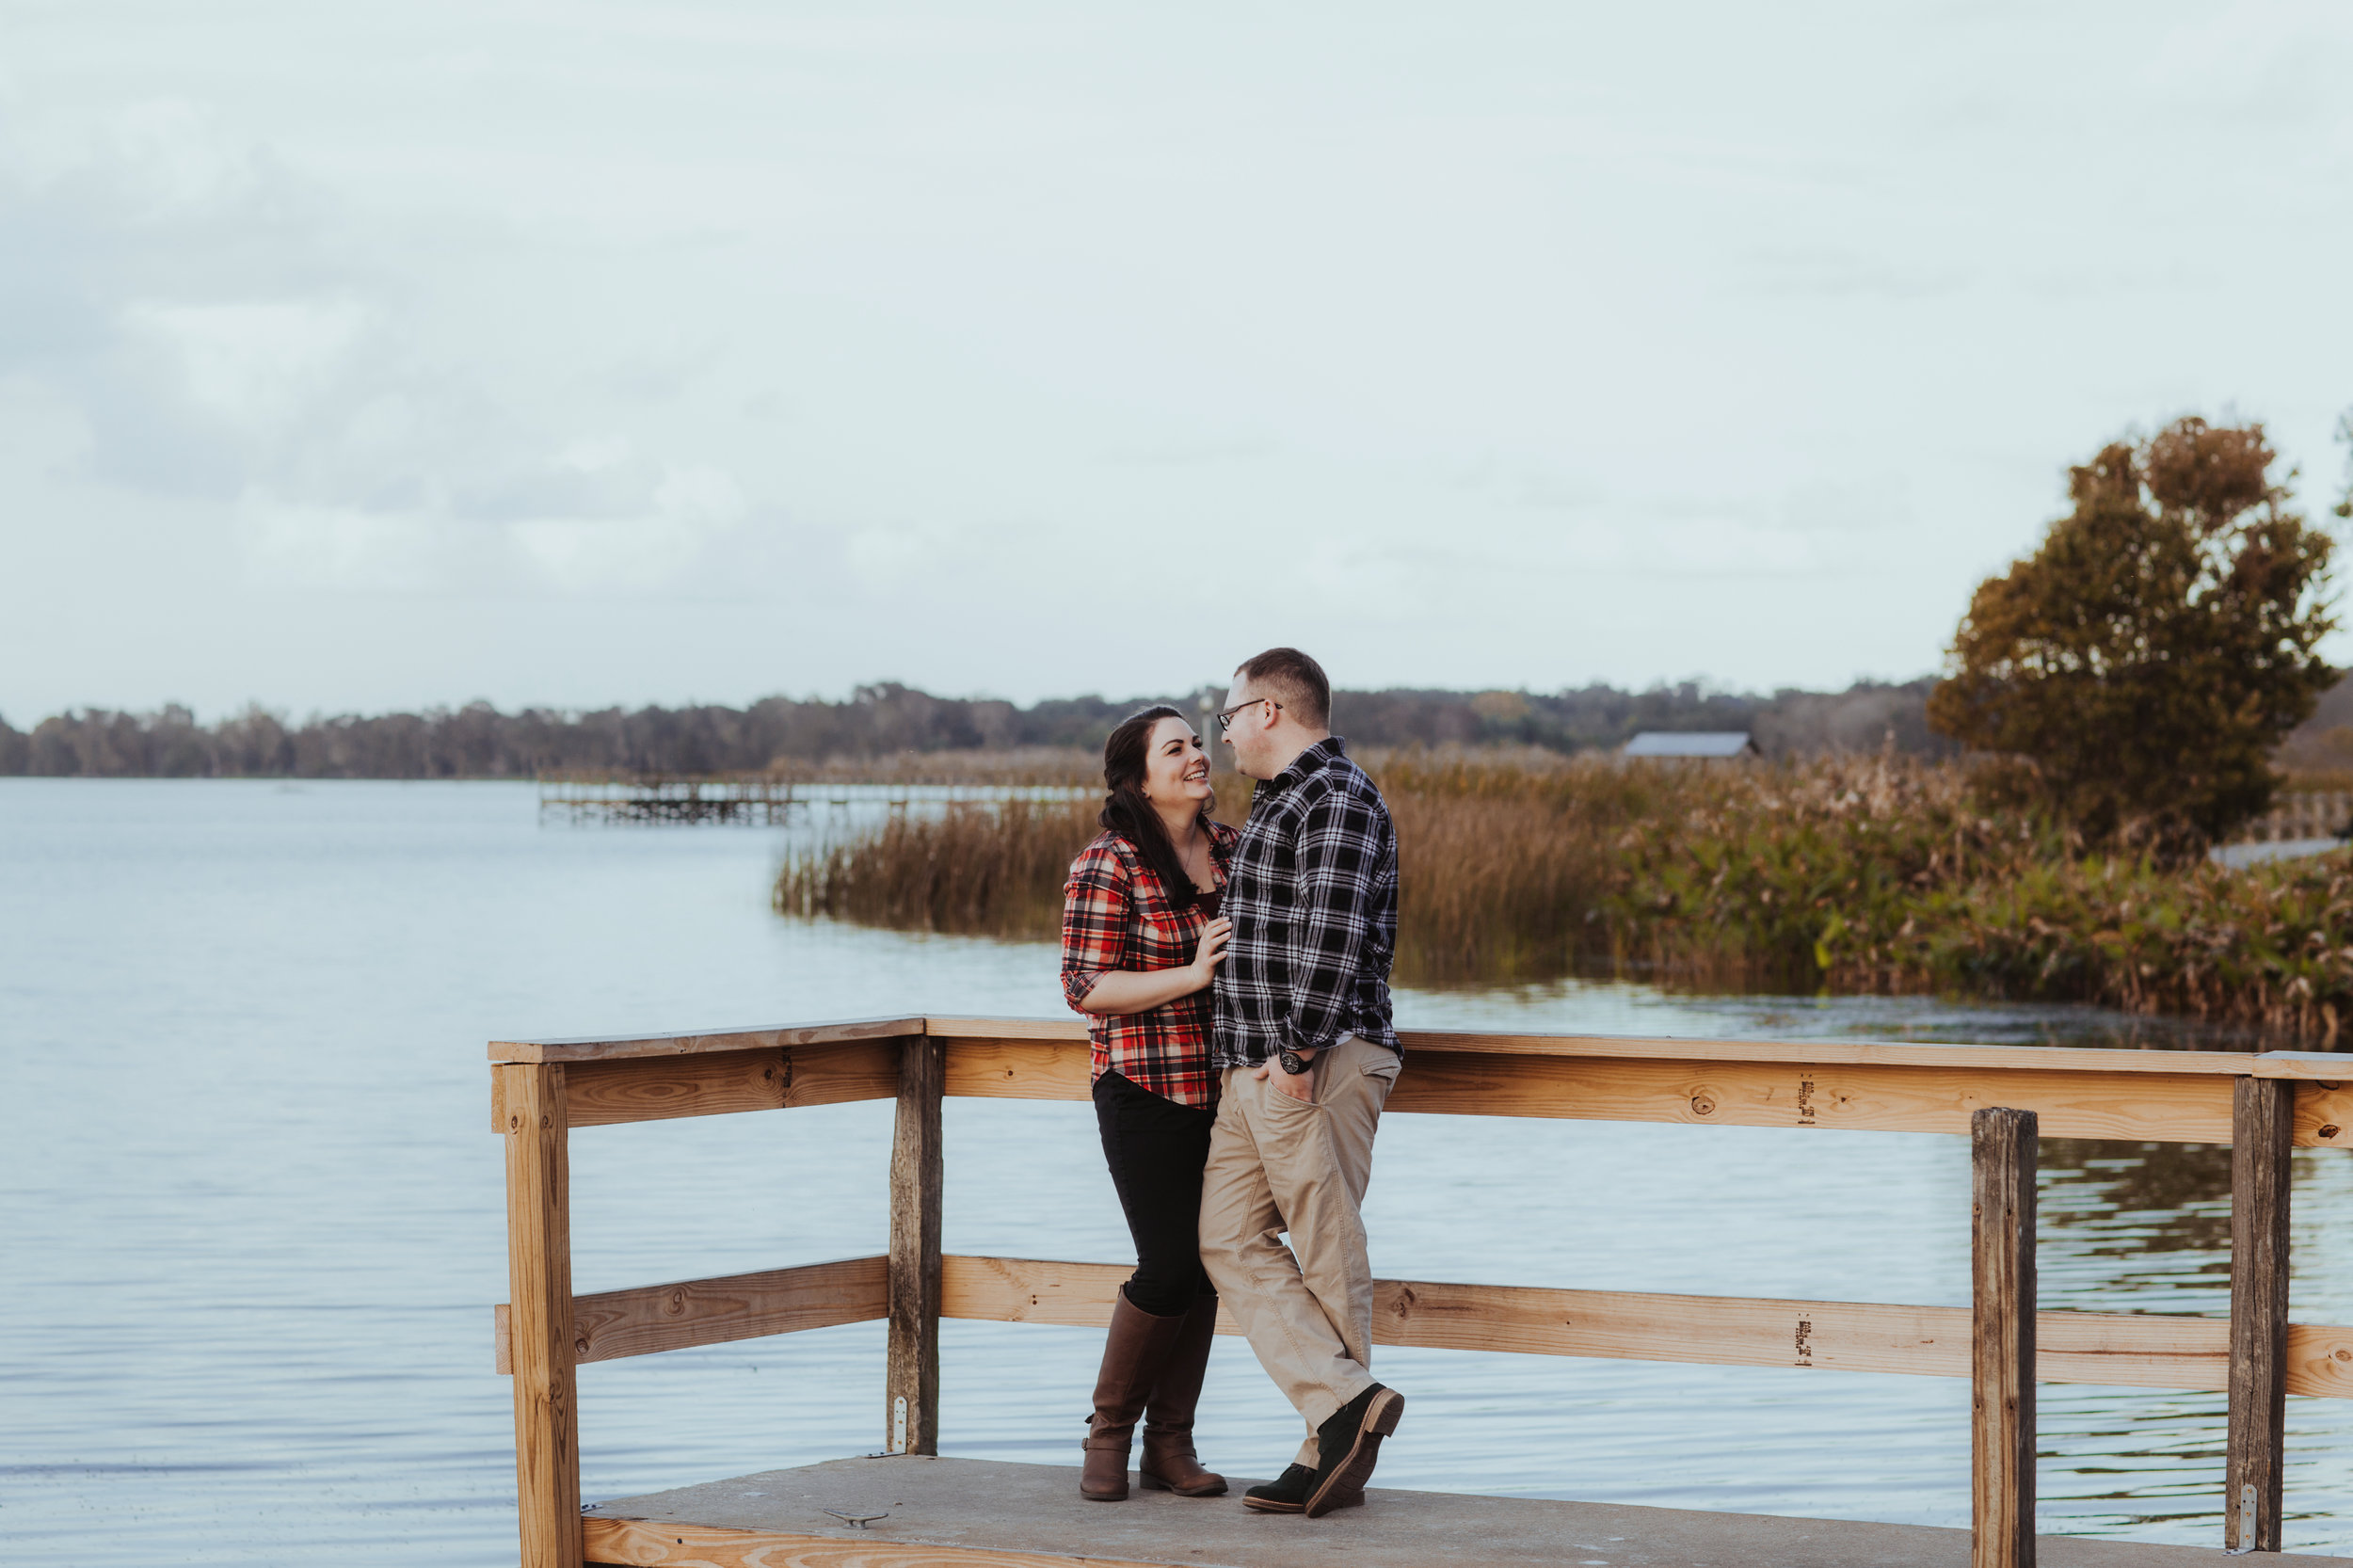 Engagement Session | Vanessa Boy |Vanessaboy.com | orlando,fl-164.com |final.jpg